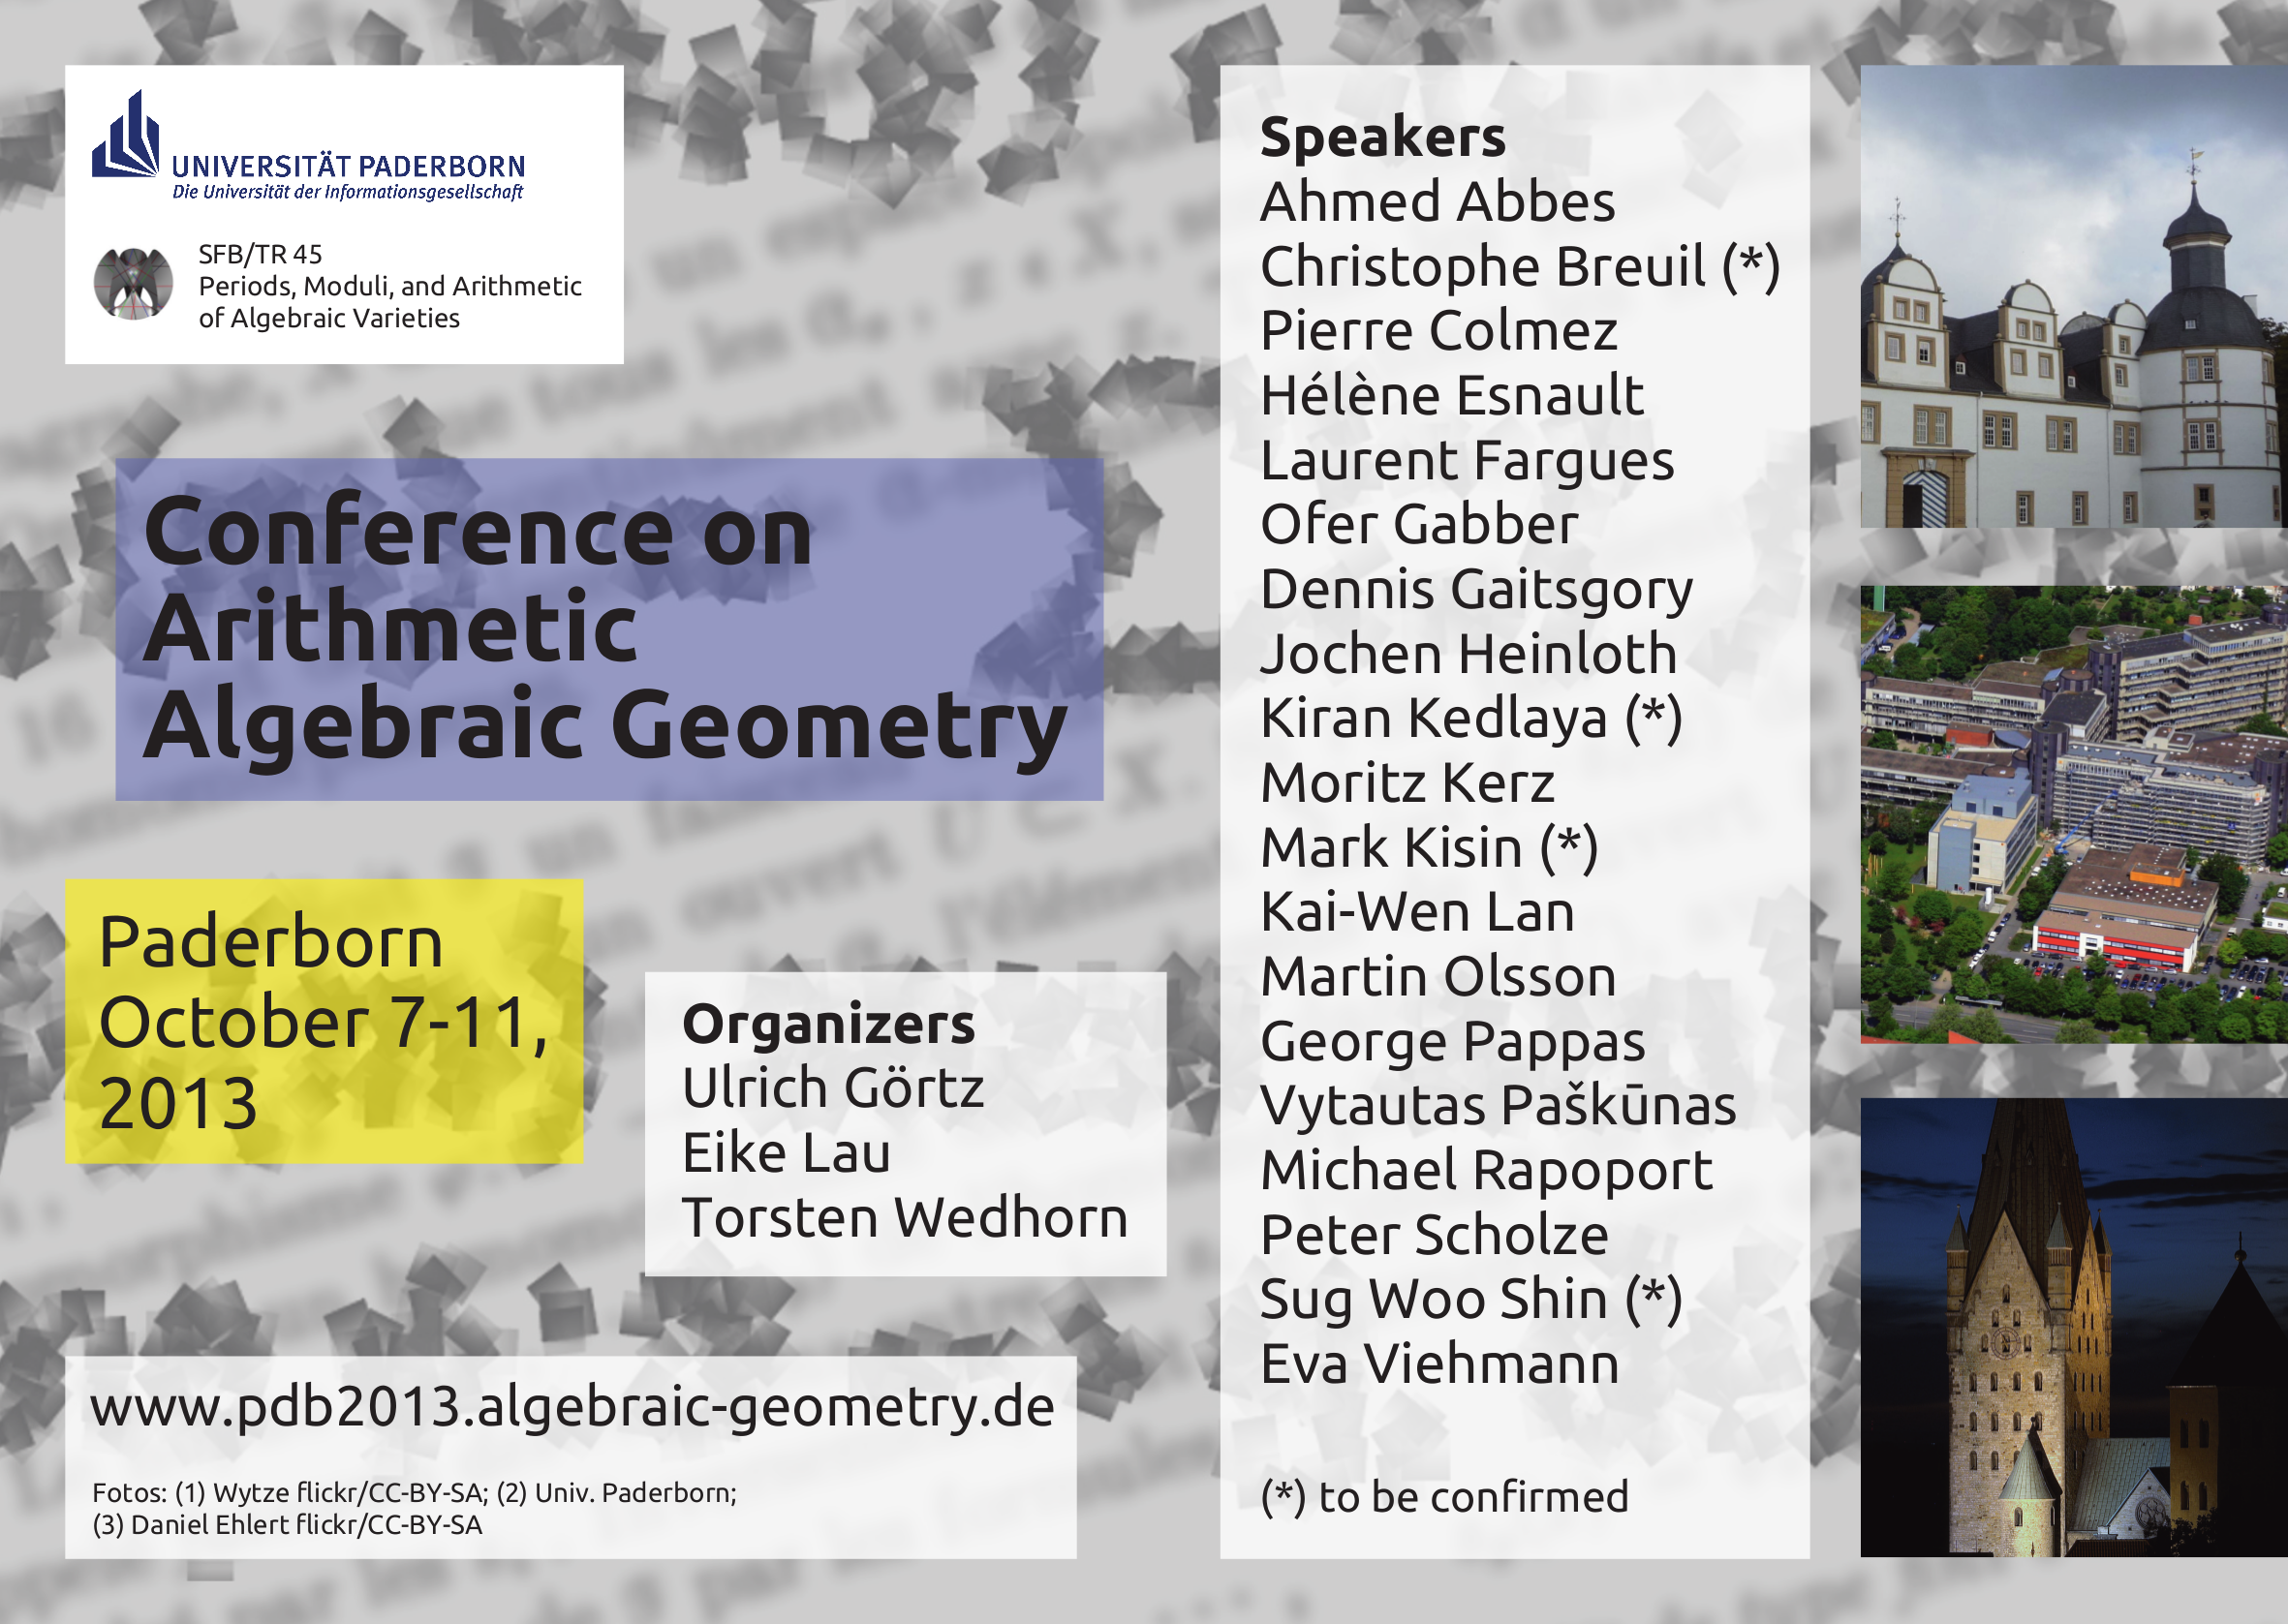 Conference on Arithmetic Algebraic Geometry, Paderborn 2013